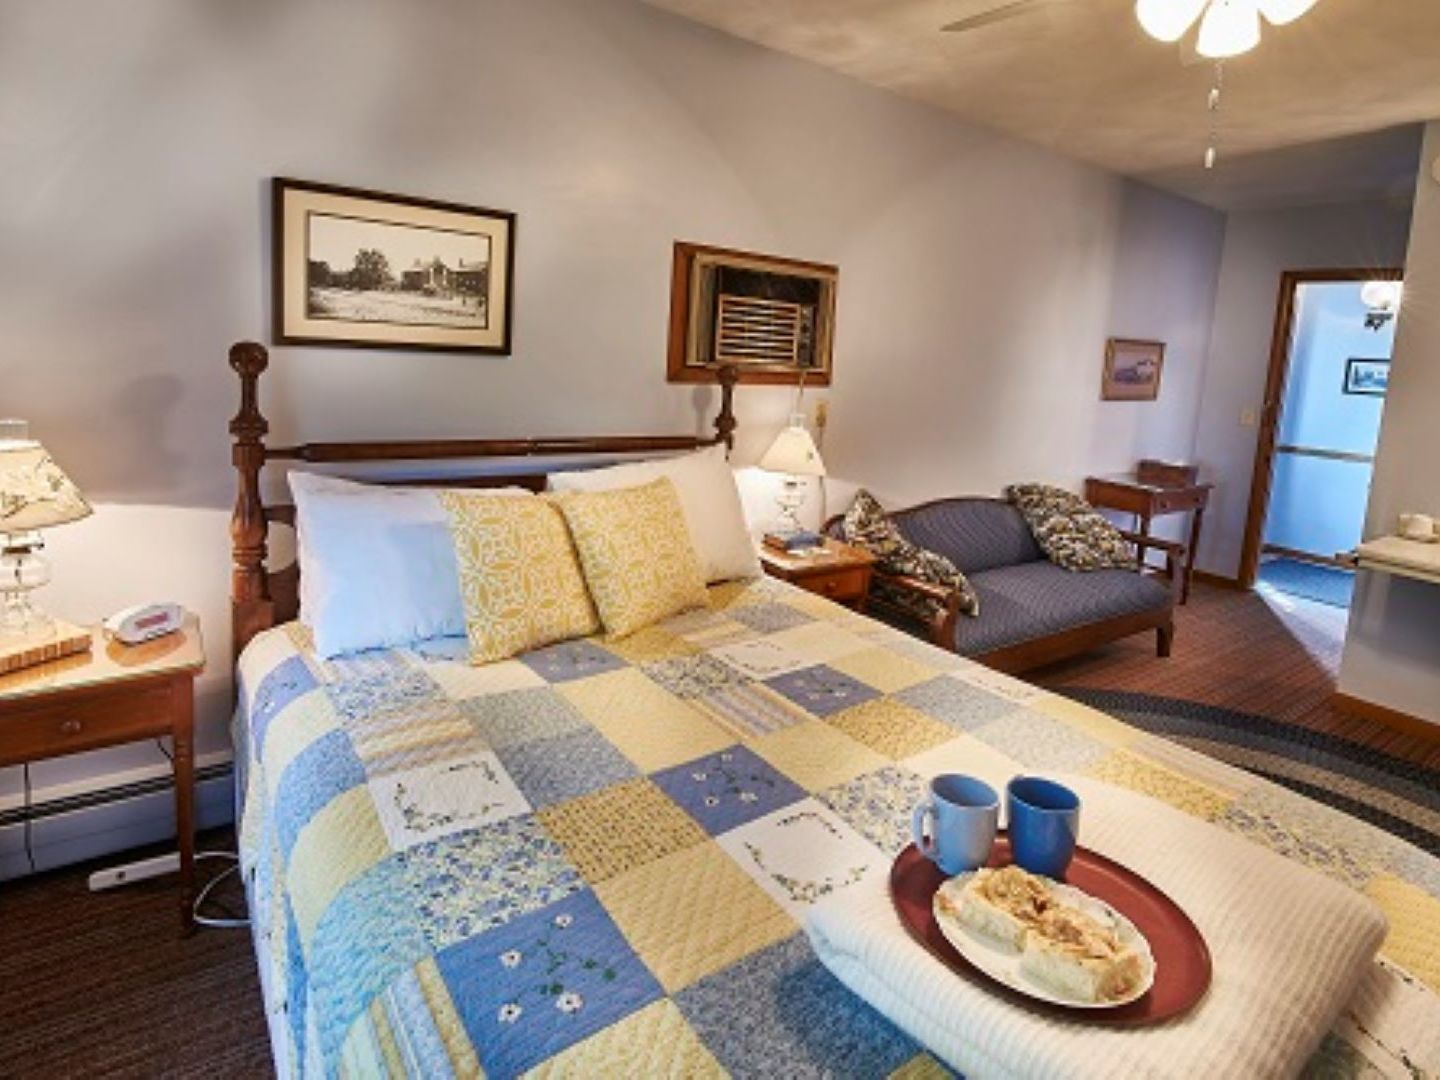 A bedroom with a bed and desk in a room at Die Heimat Country Inn.